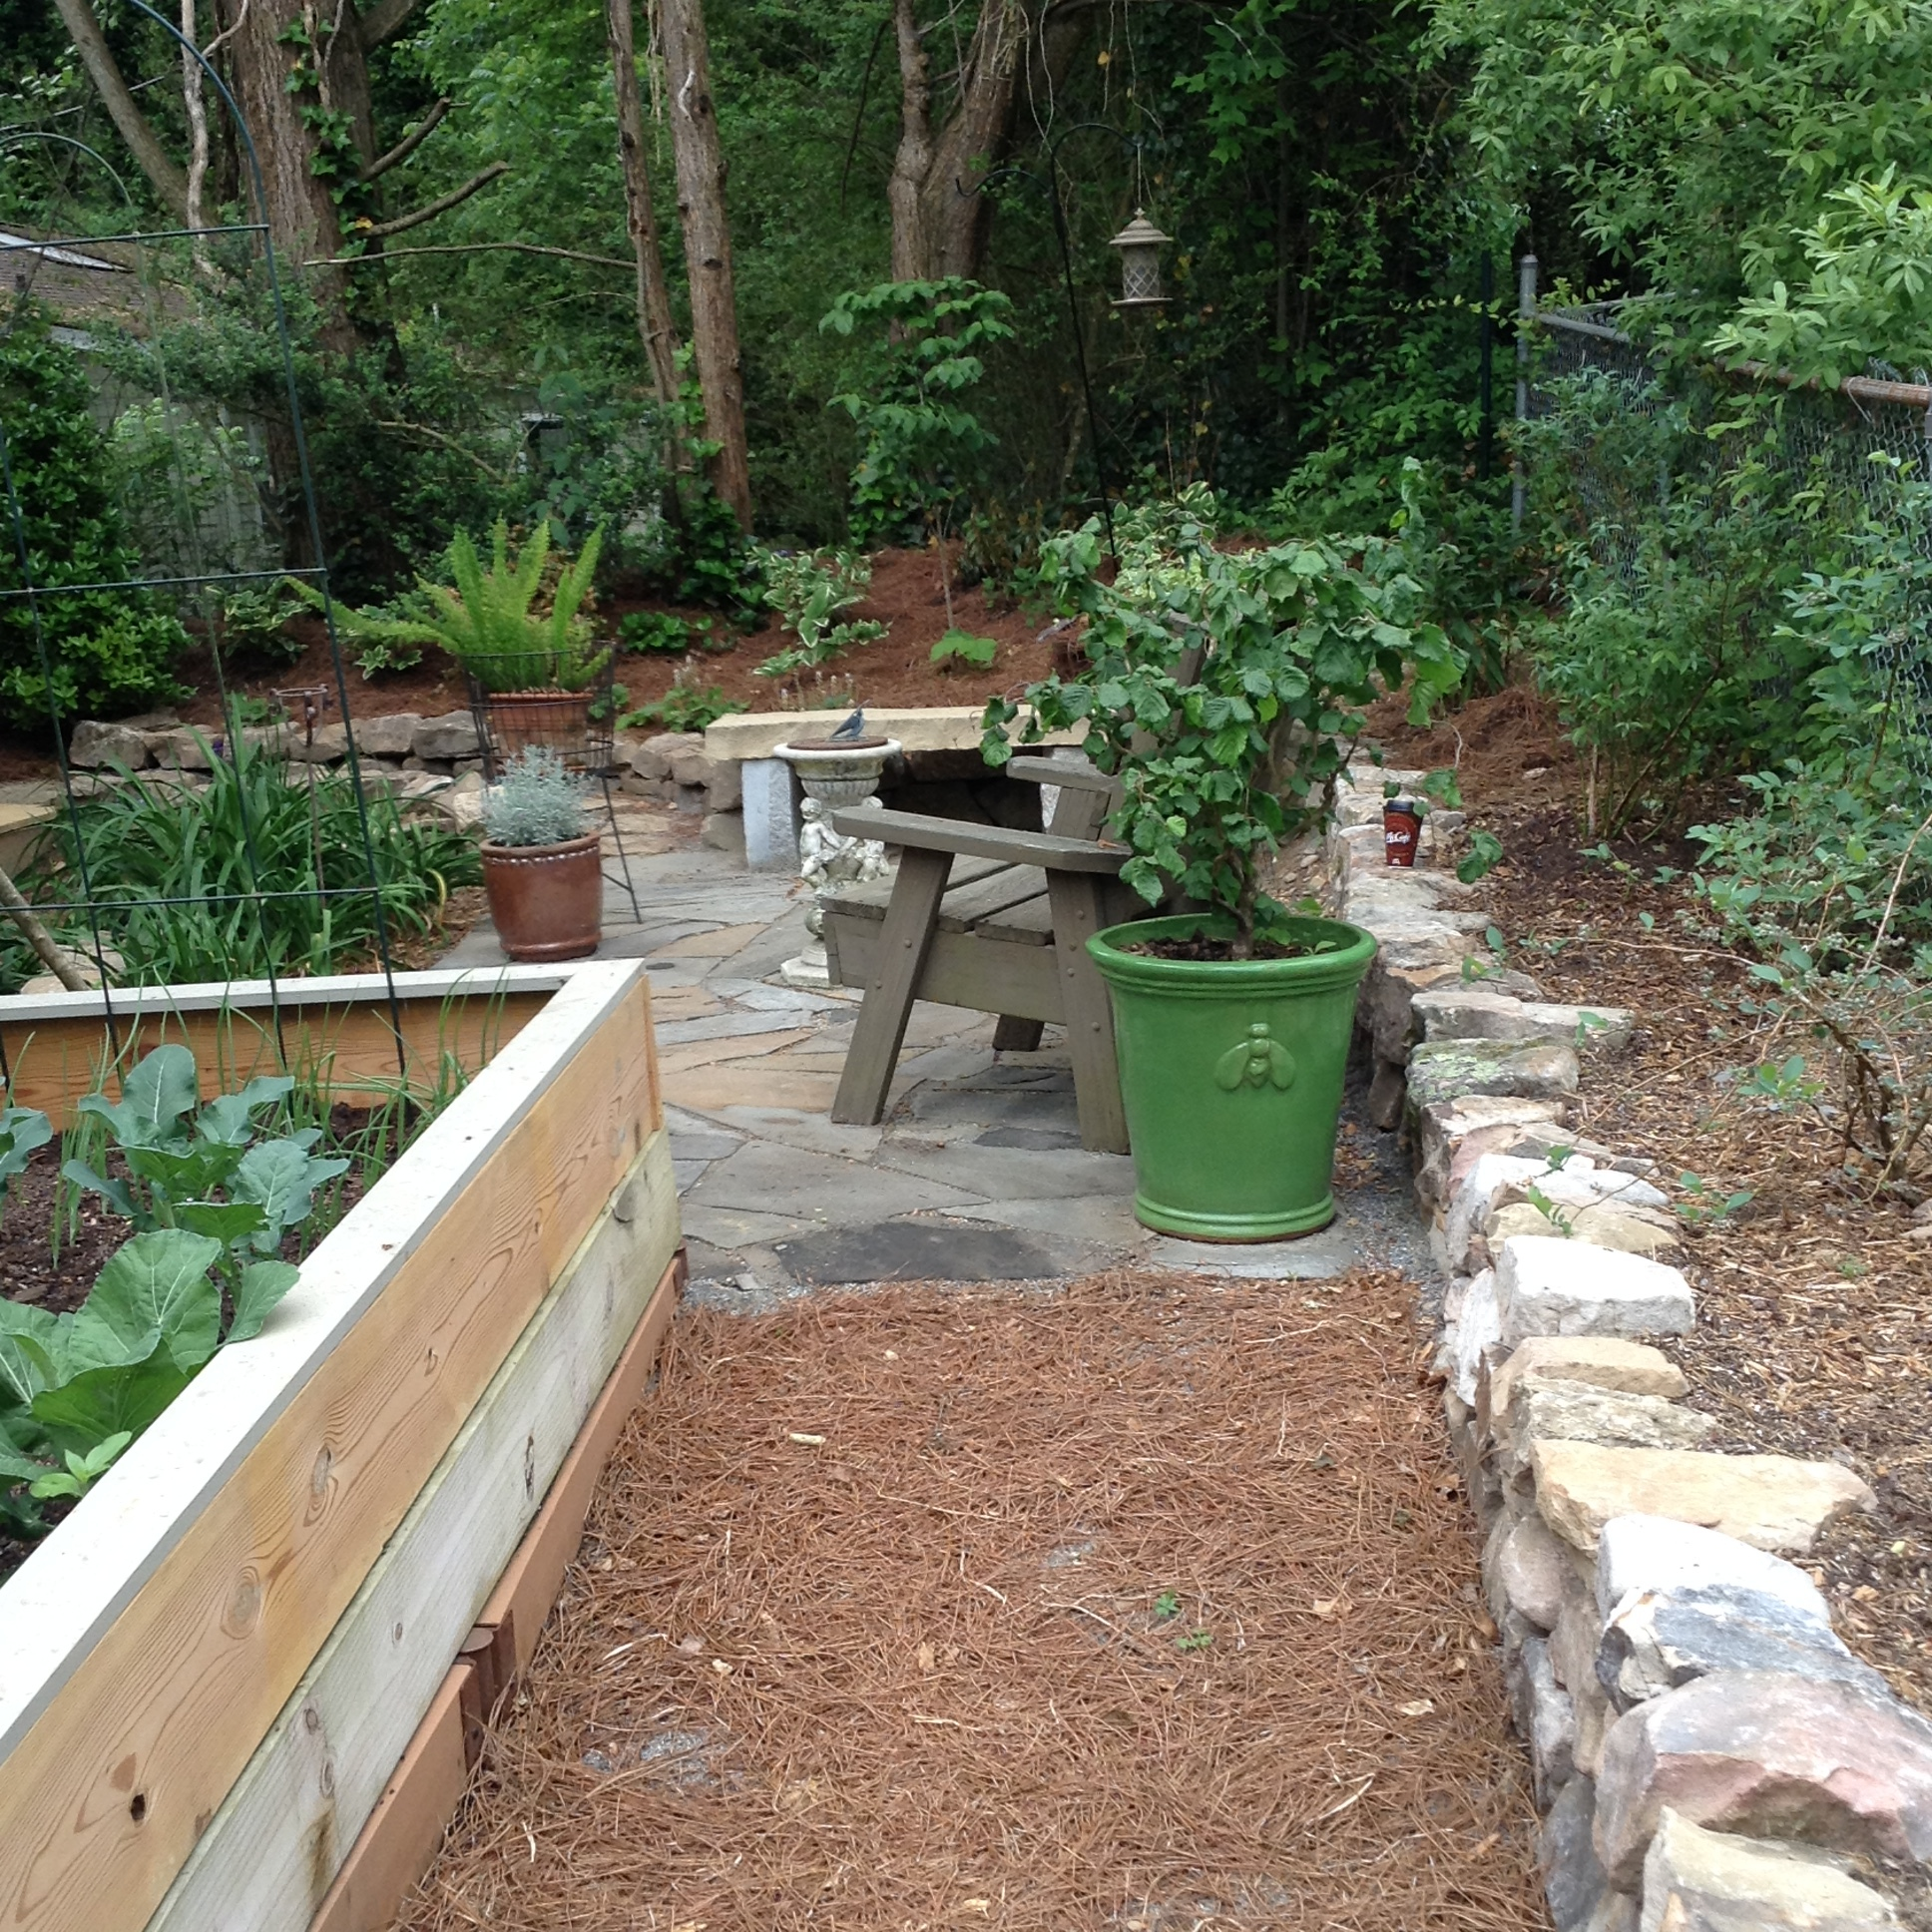 The perfect place to sit after weeding the garden, or enjoy an evening near the fruits of your labor.